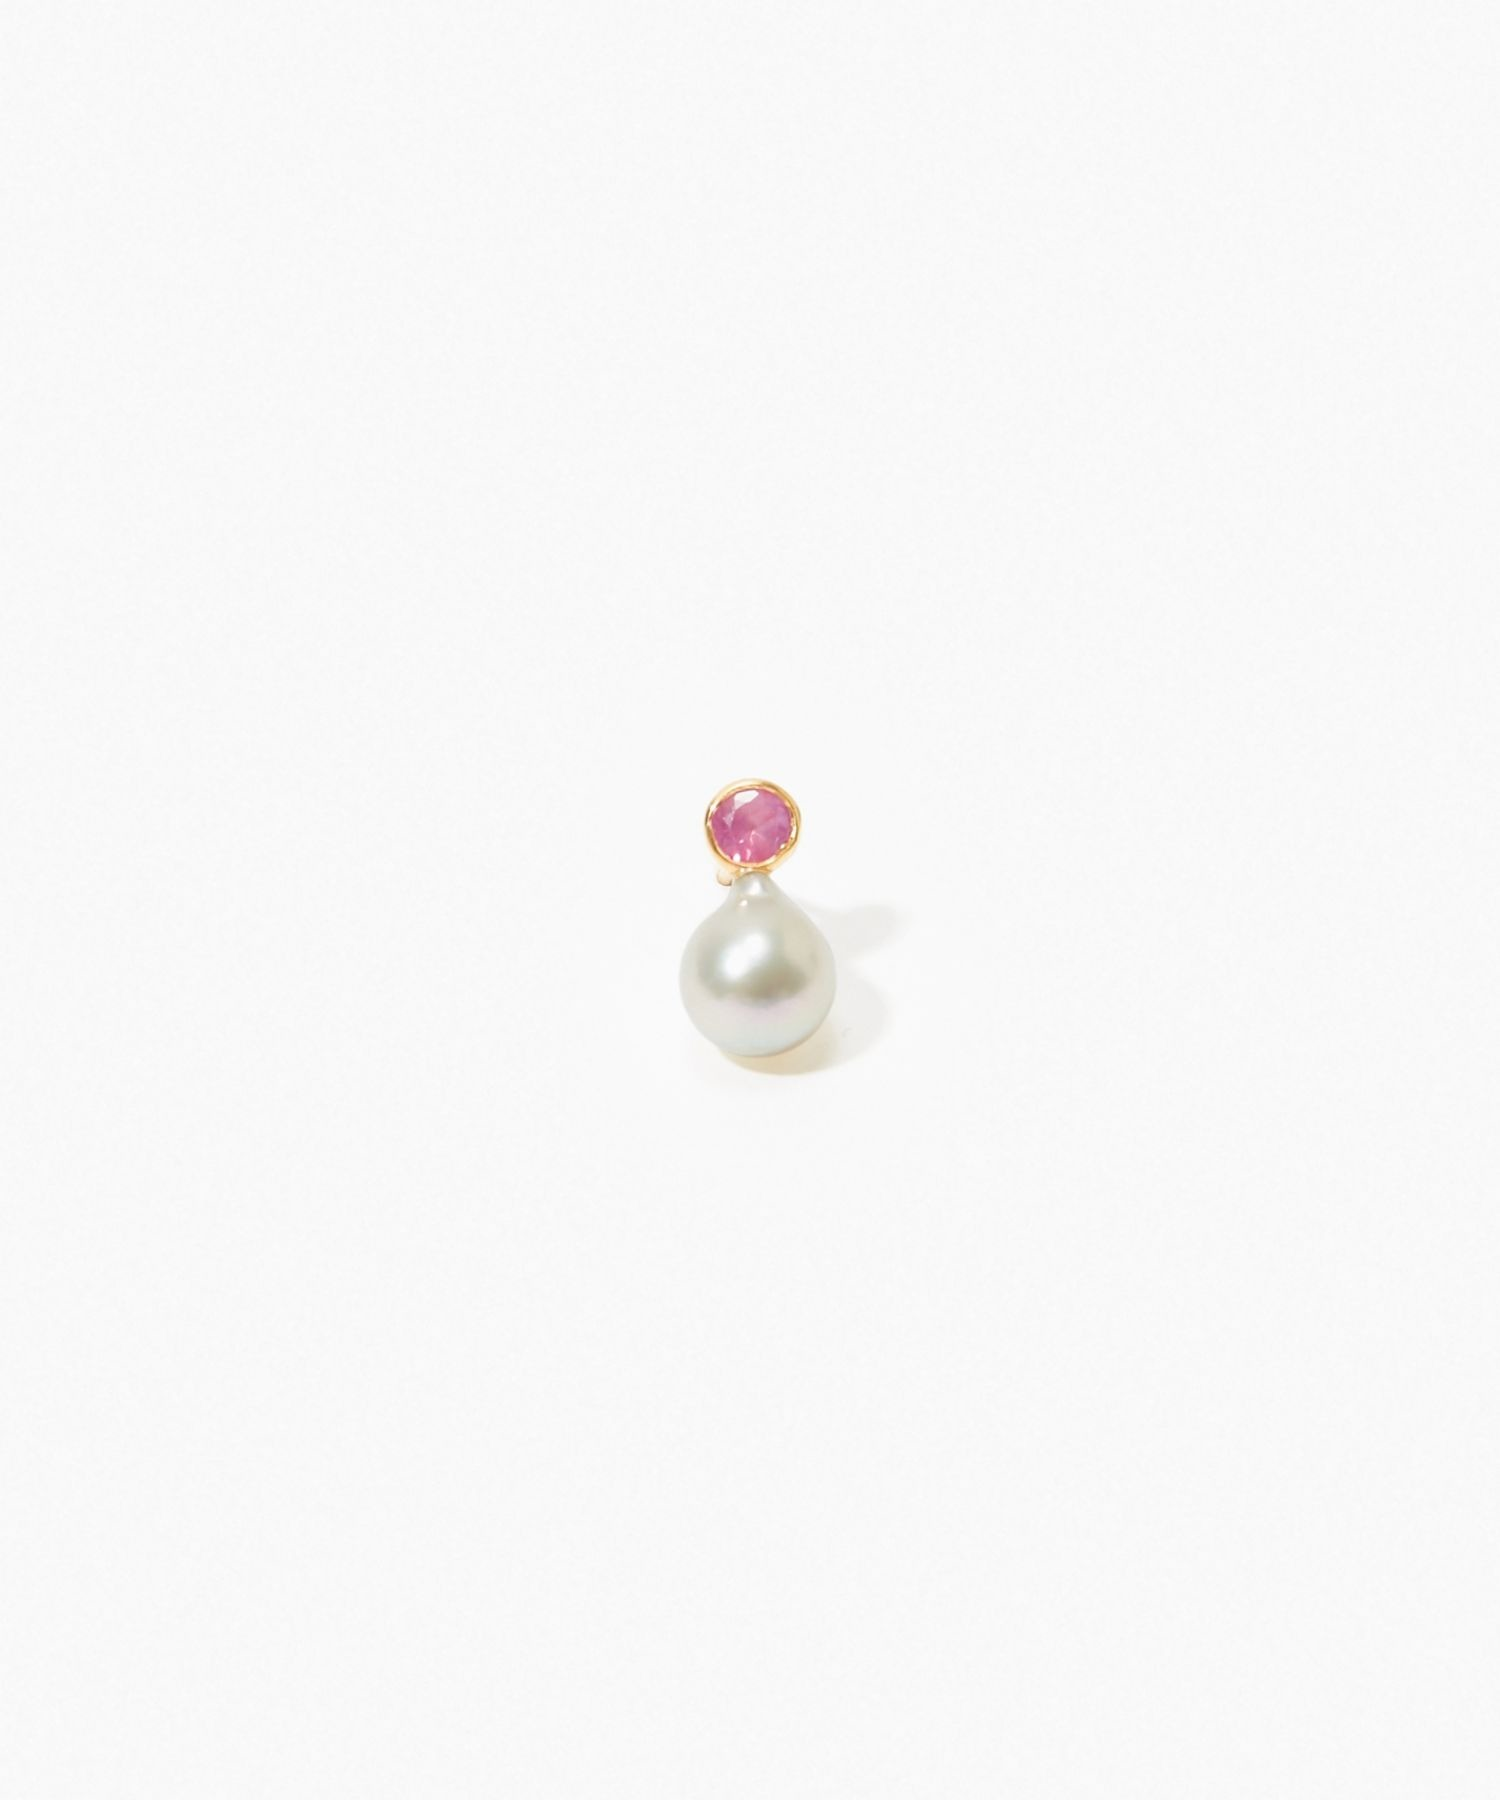 [philia] K10 akoya and round ruby stud pierced earring